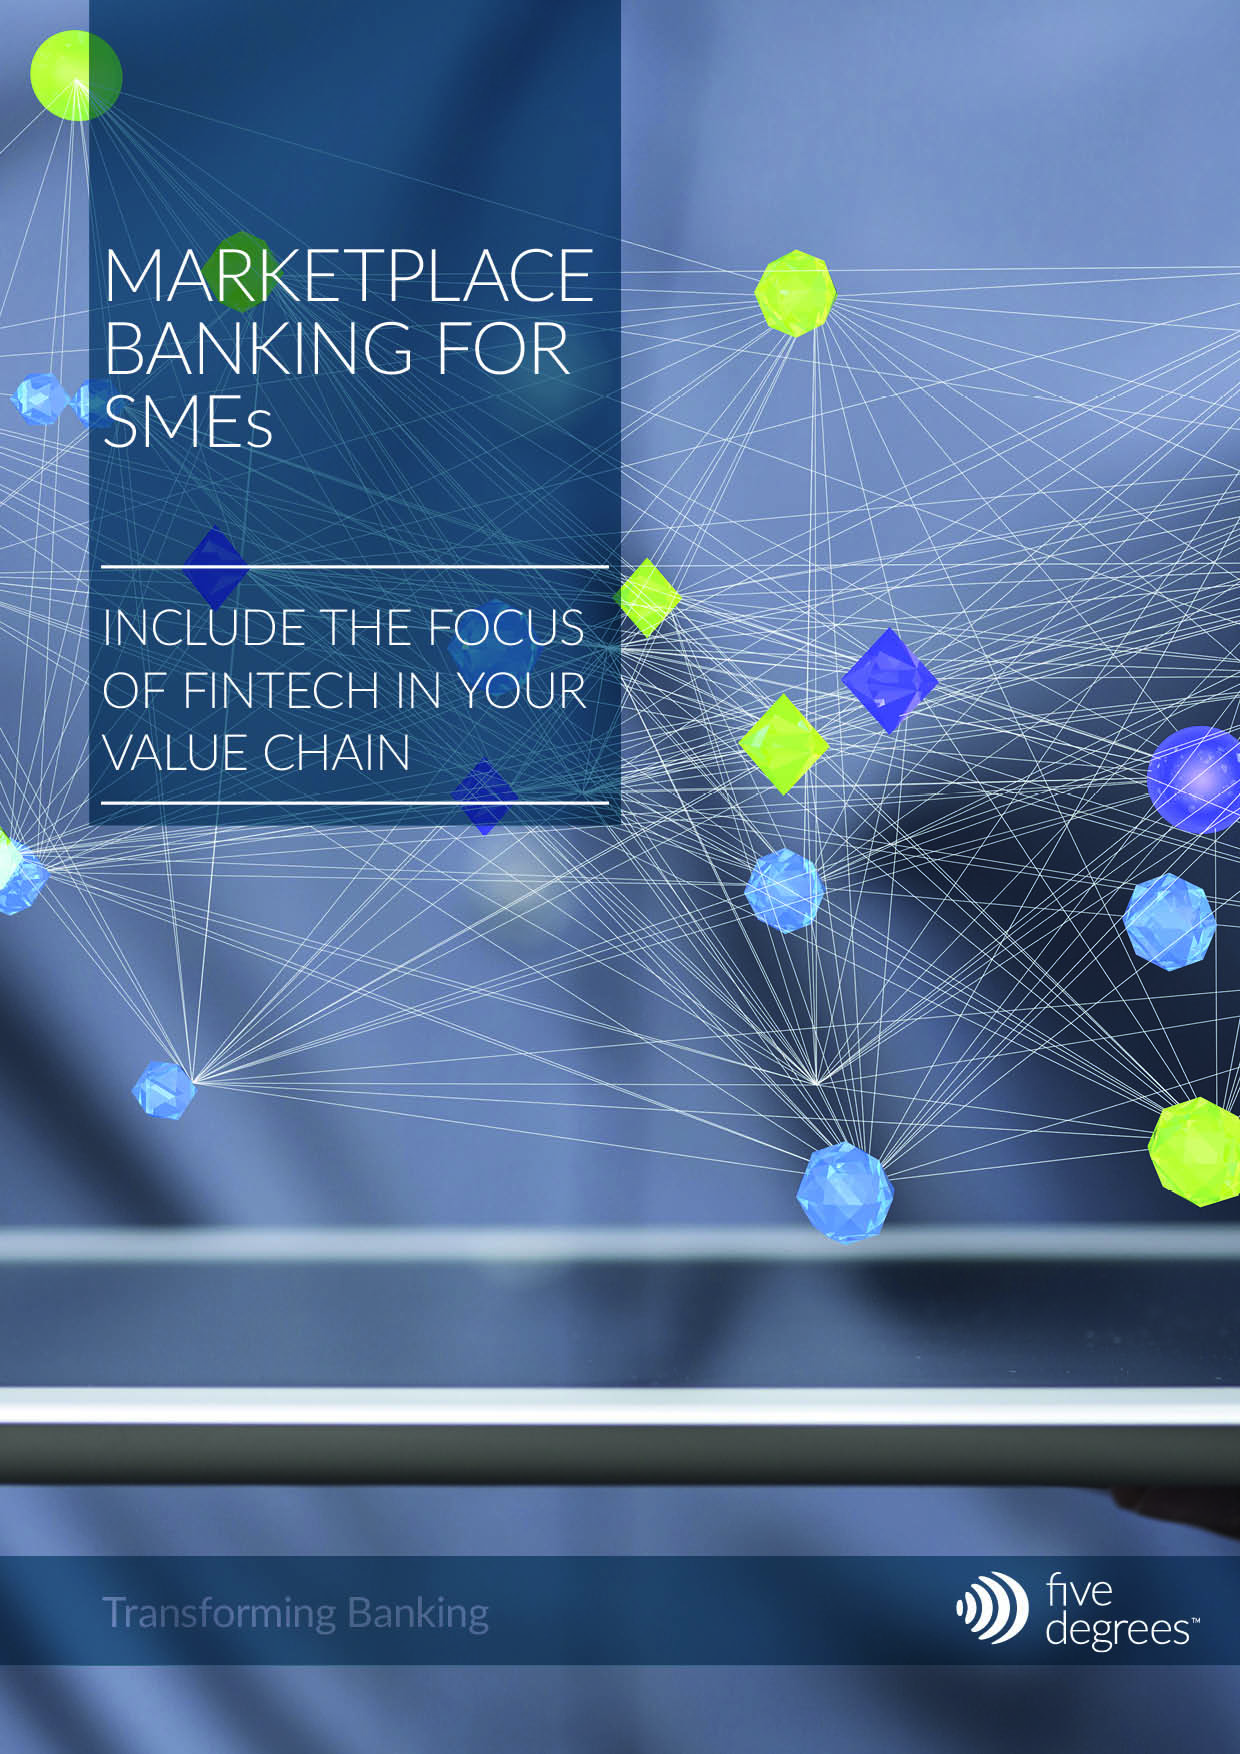 Five Degrees whitepaper - Marketplace Banking for SMEs